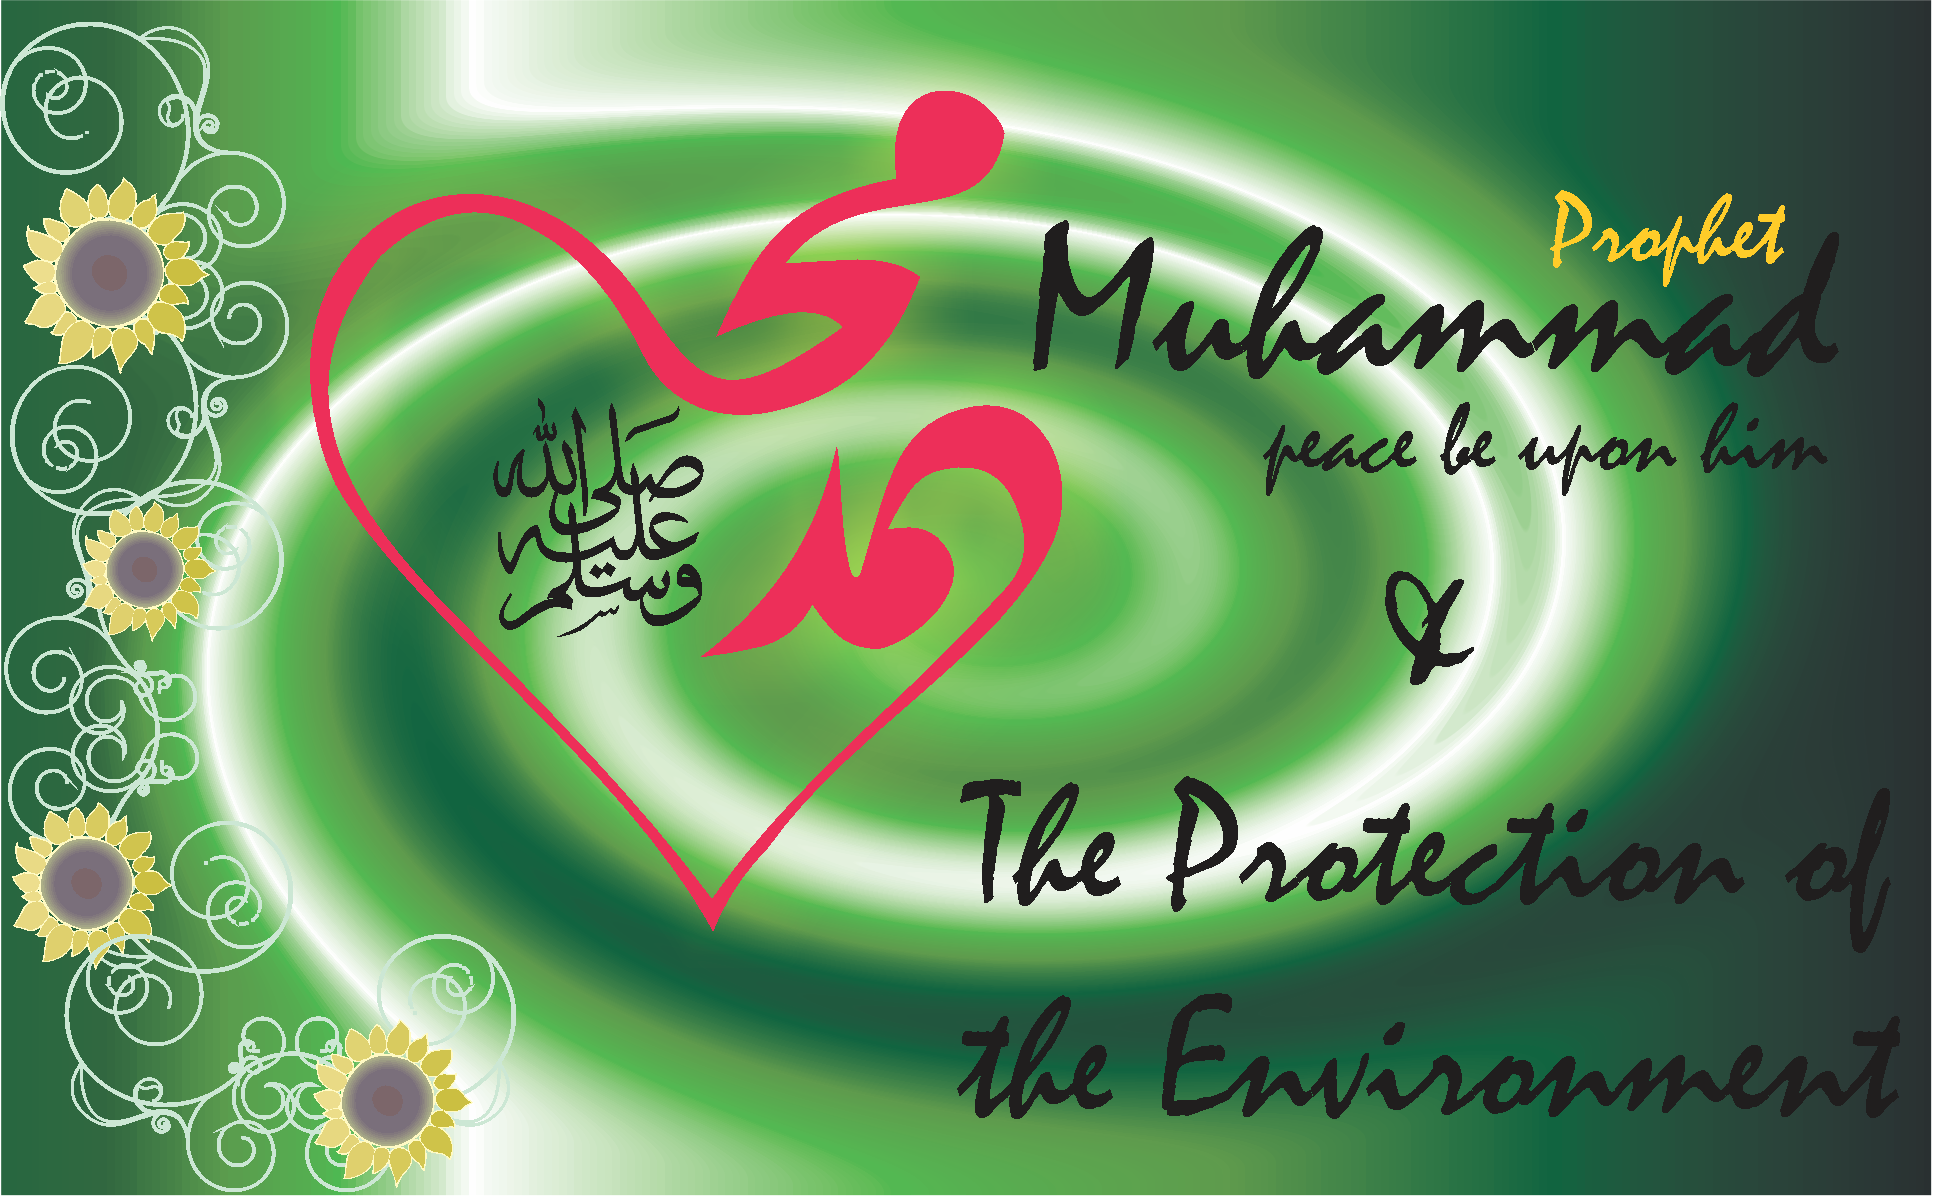 - muhmmad - The Teachings of Nabi Muhammad (SAW) on the Protection of the Environment: